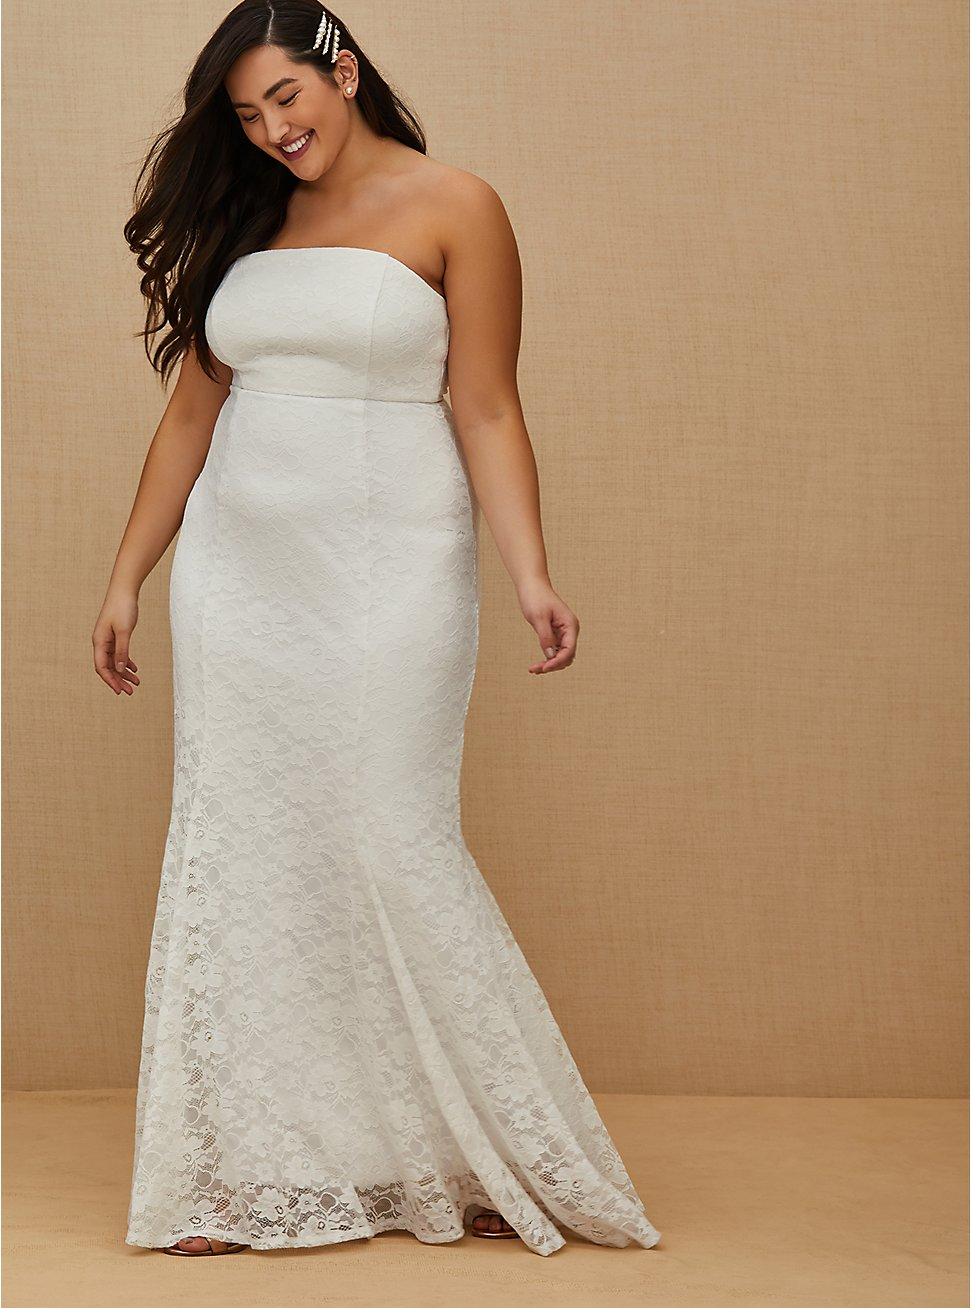 White Lace Strapless Fit & Flare Wedding Dress, , fitModel1-hires